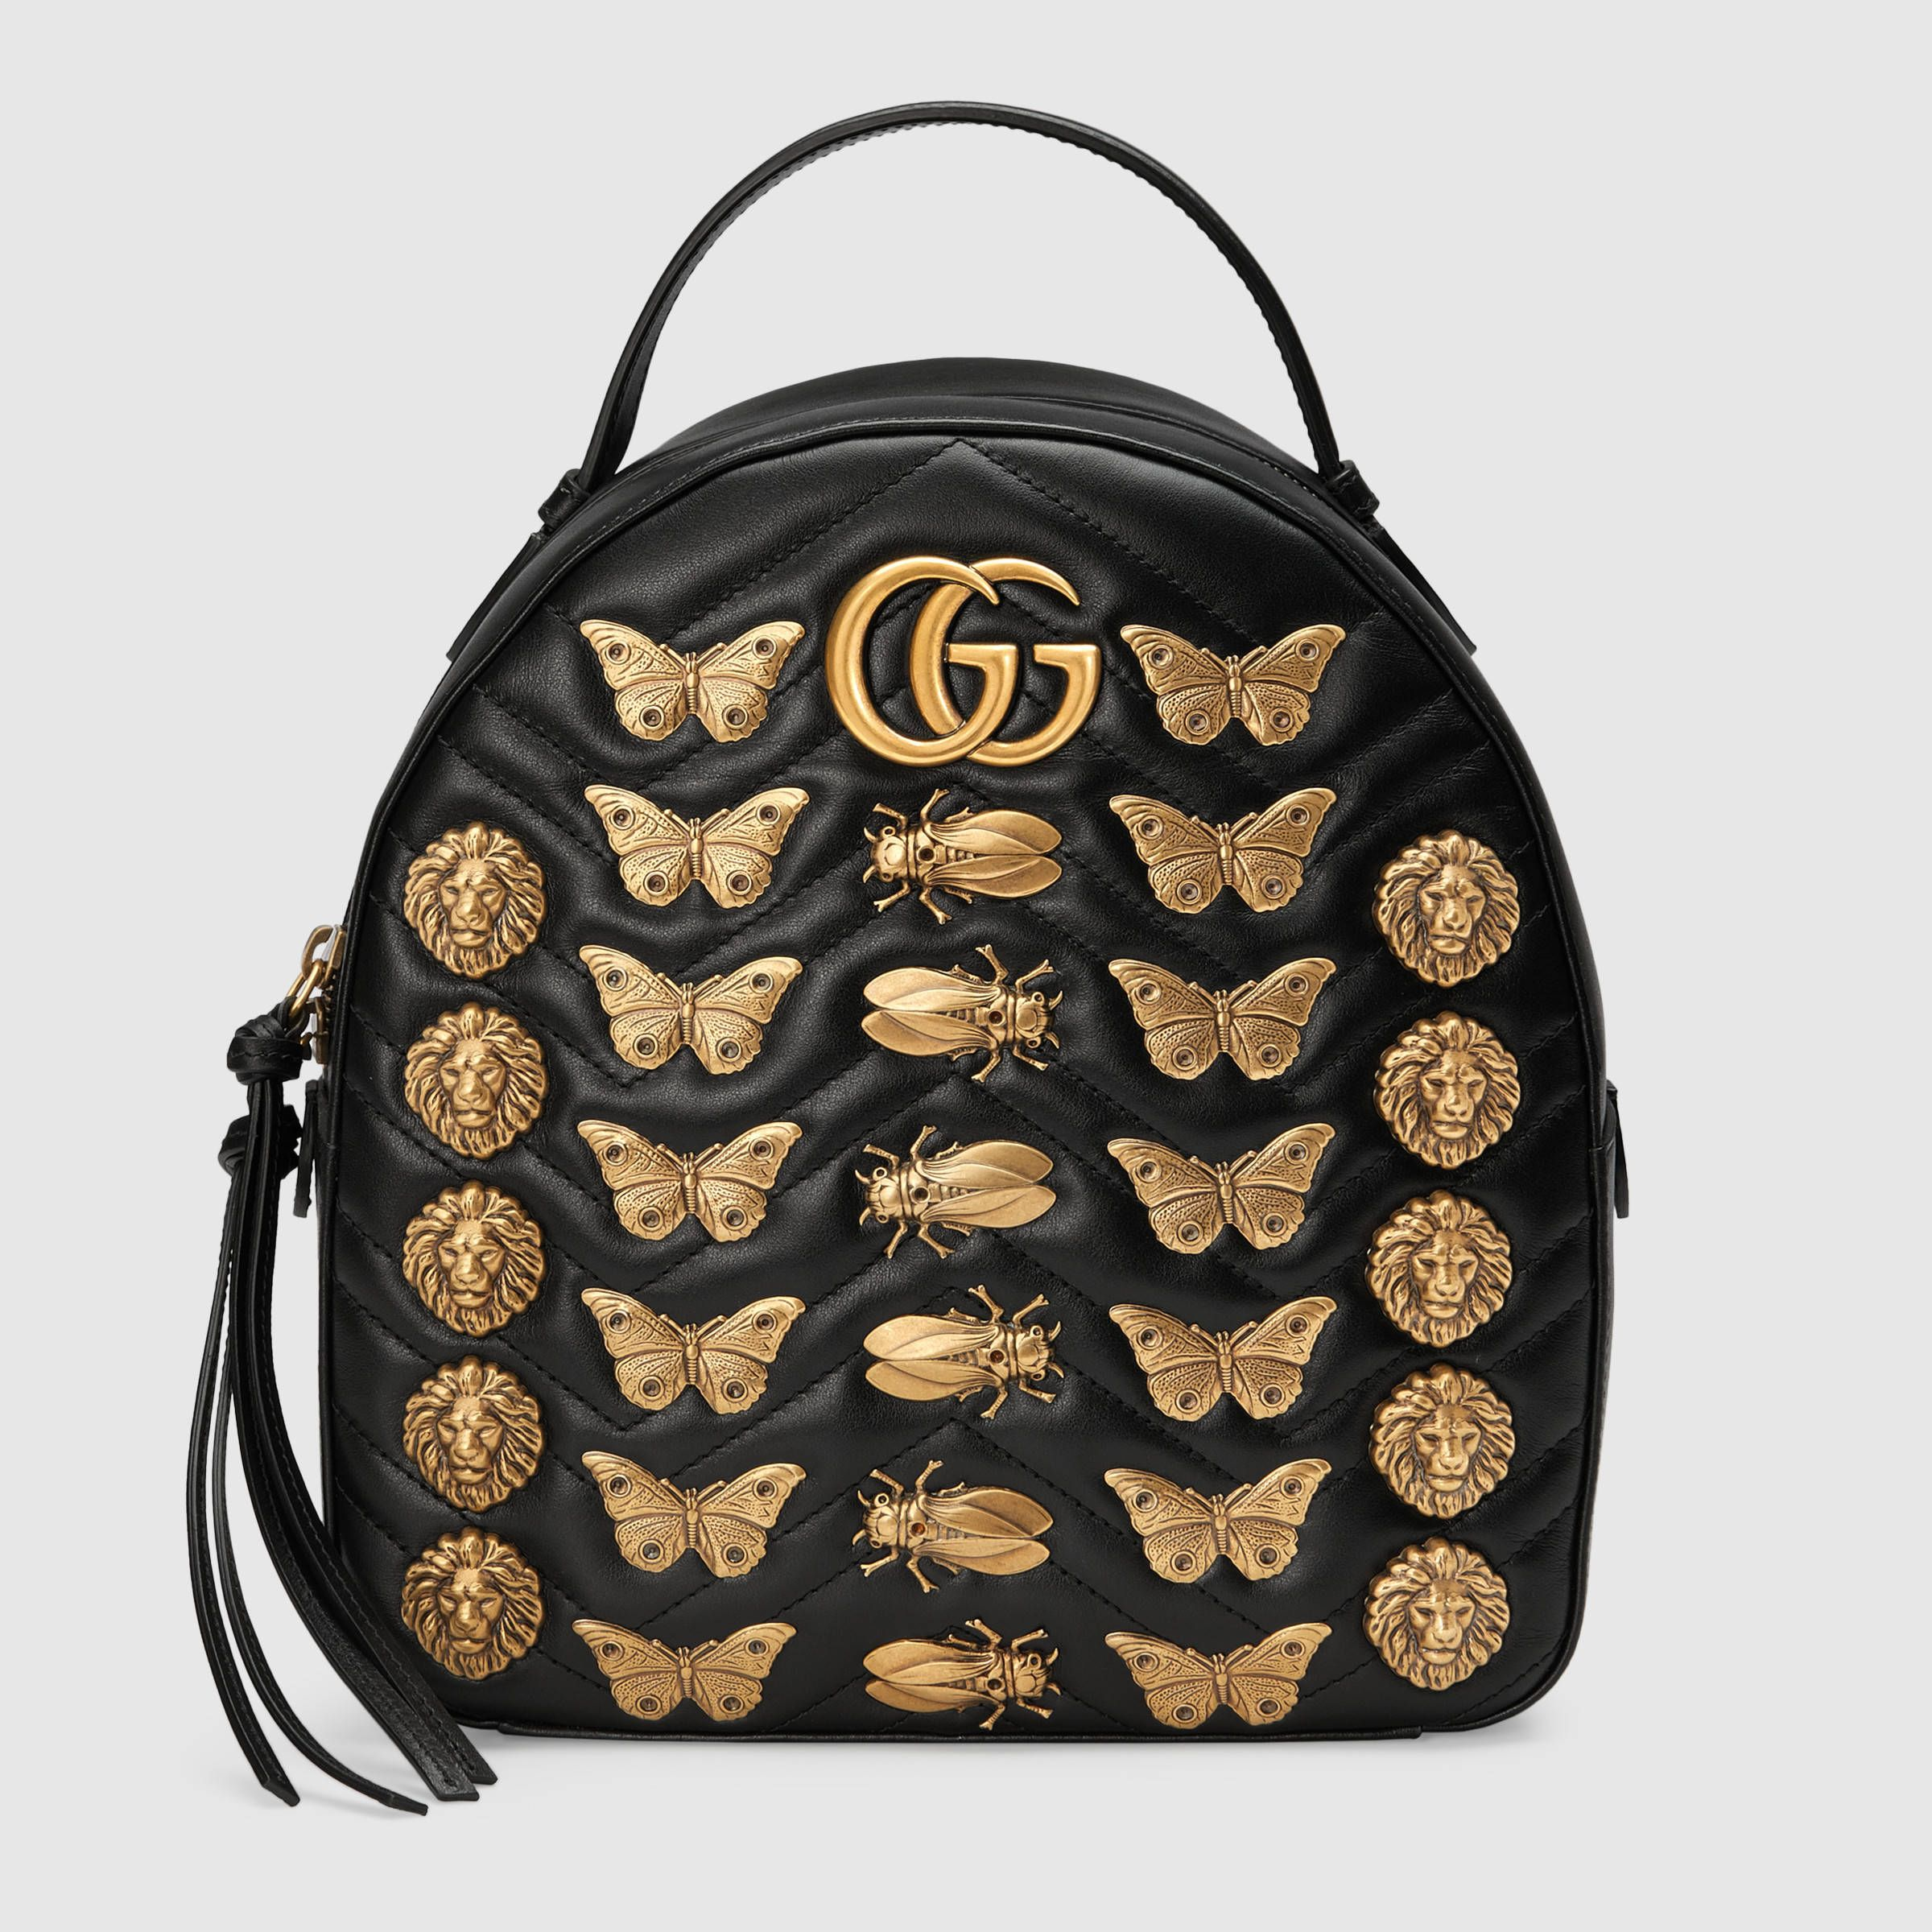 41362cc55 GG Marmont animal studs leather backpack | bags in 2019 | Leather ...